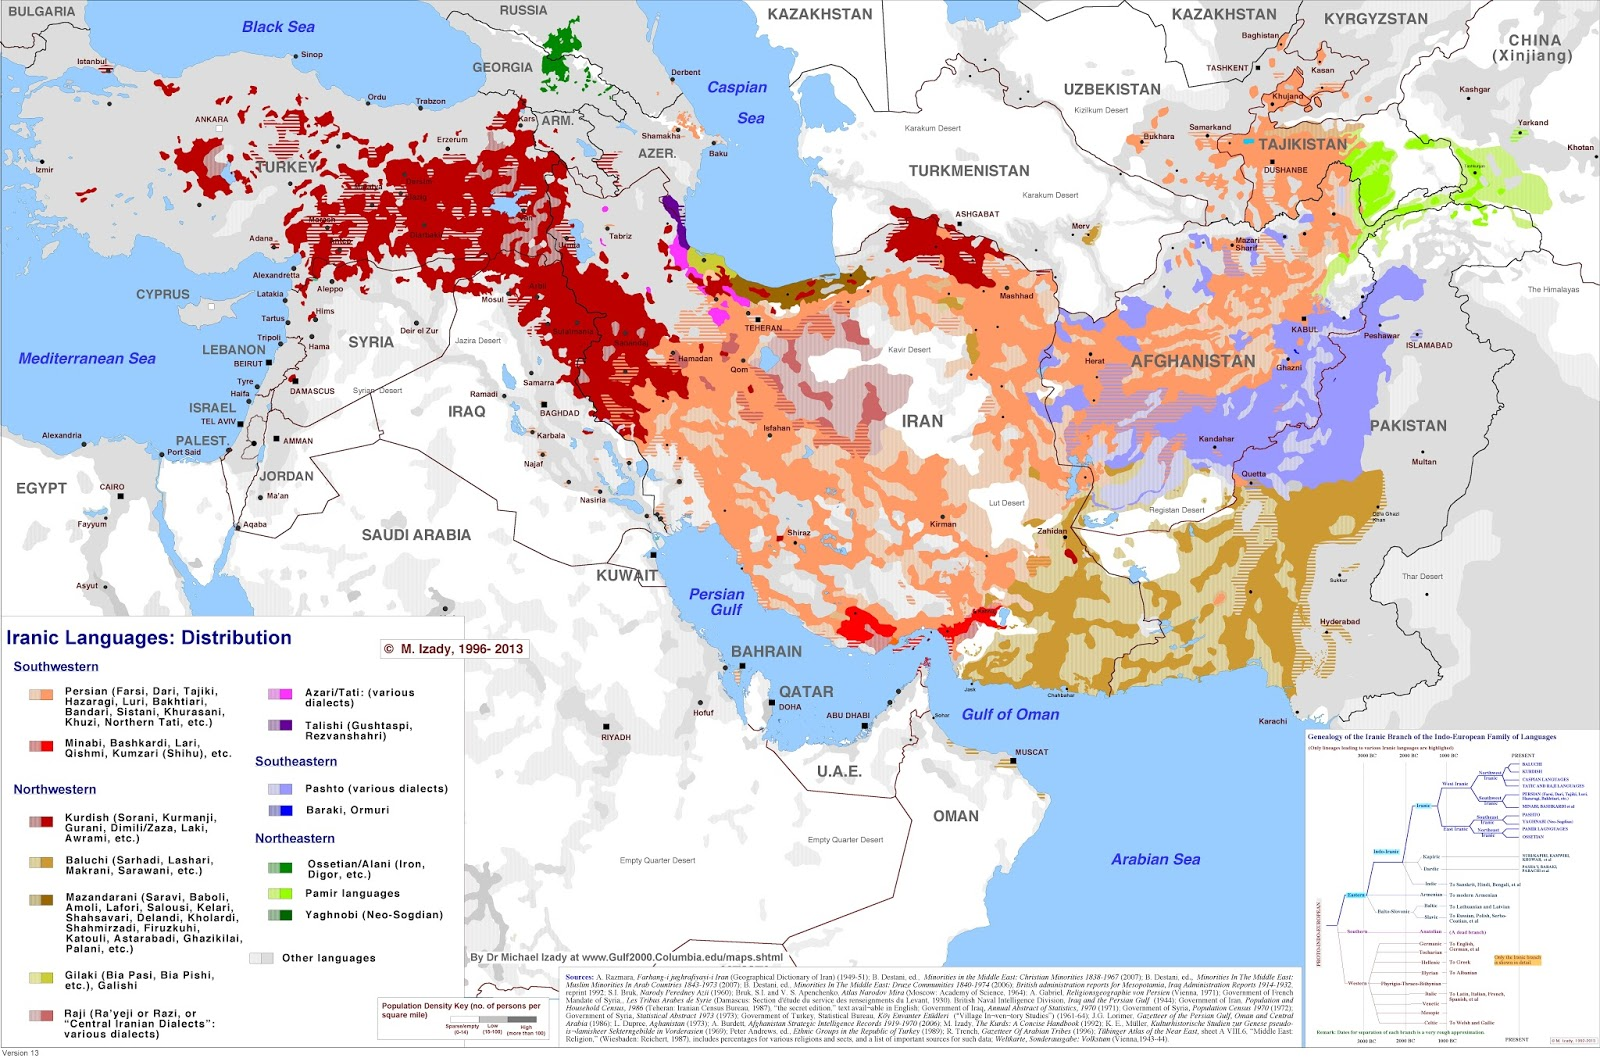 Current distribution of iranic languages